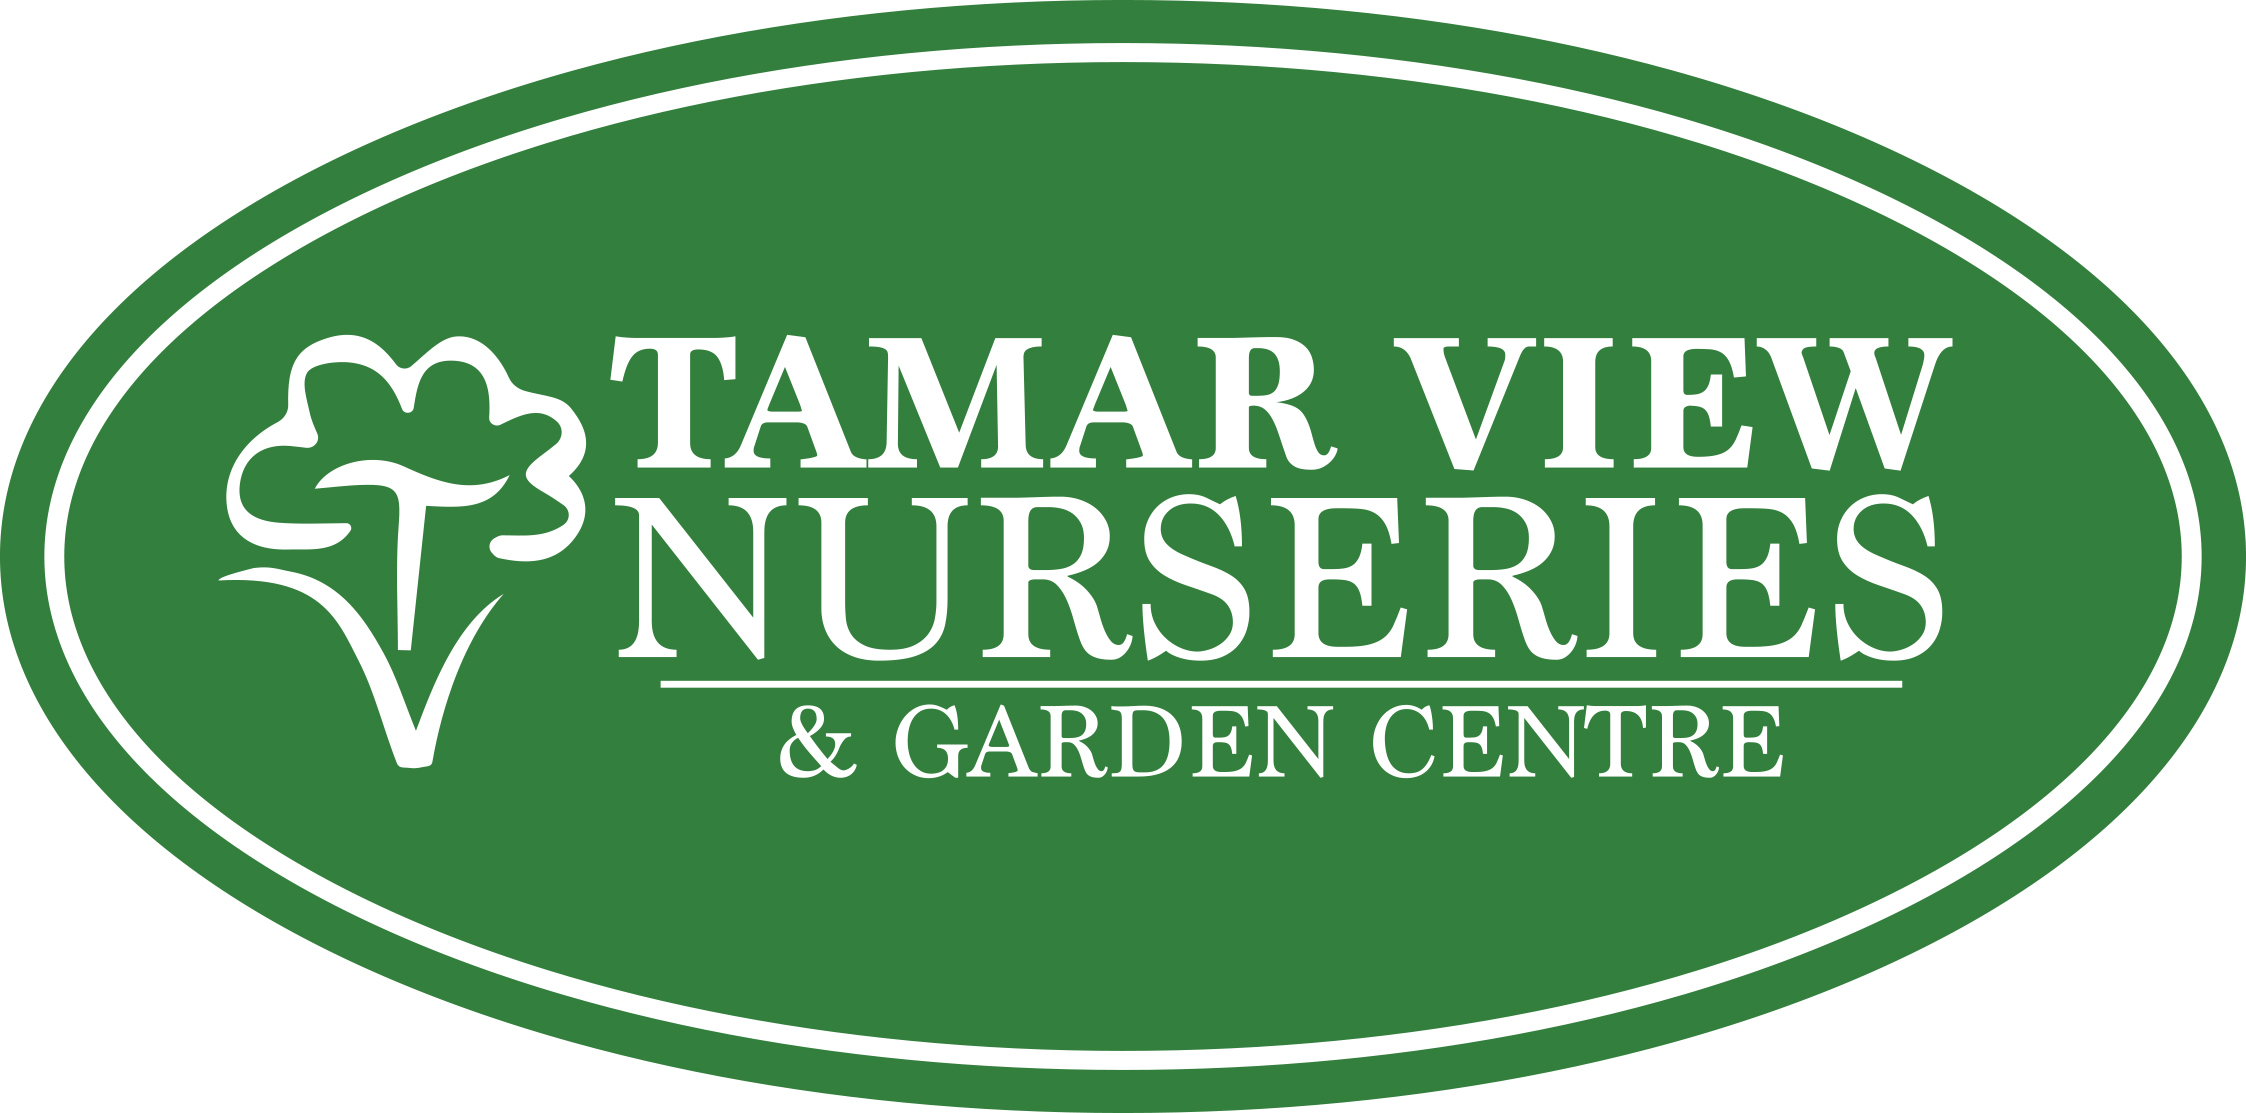 Tamar View Nurseries